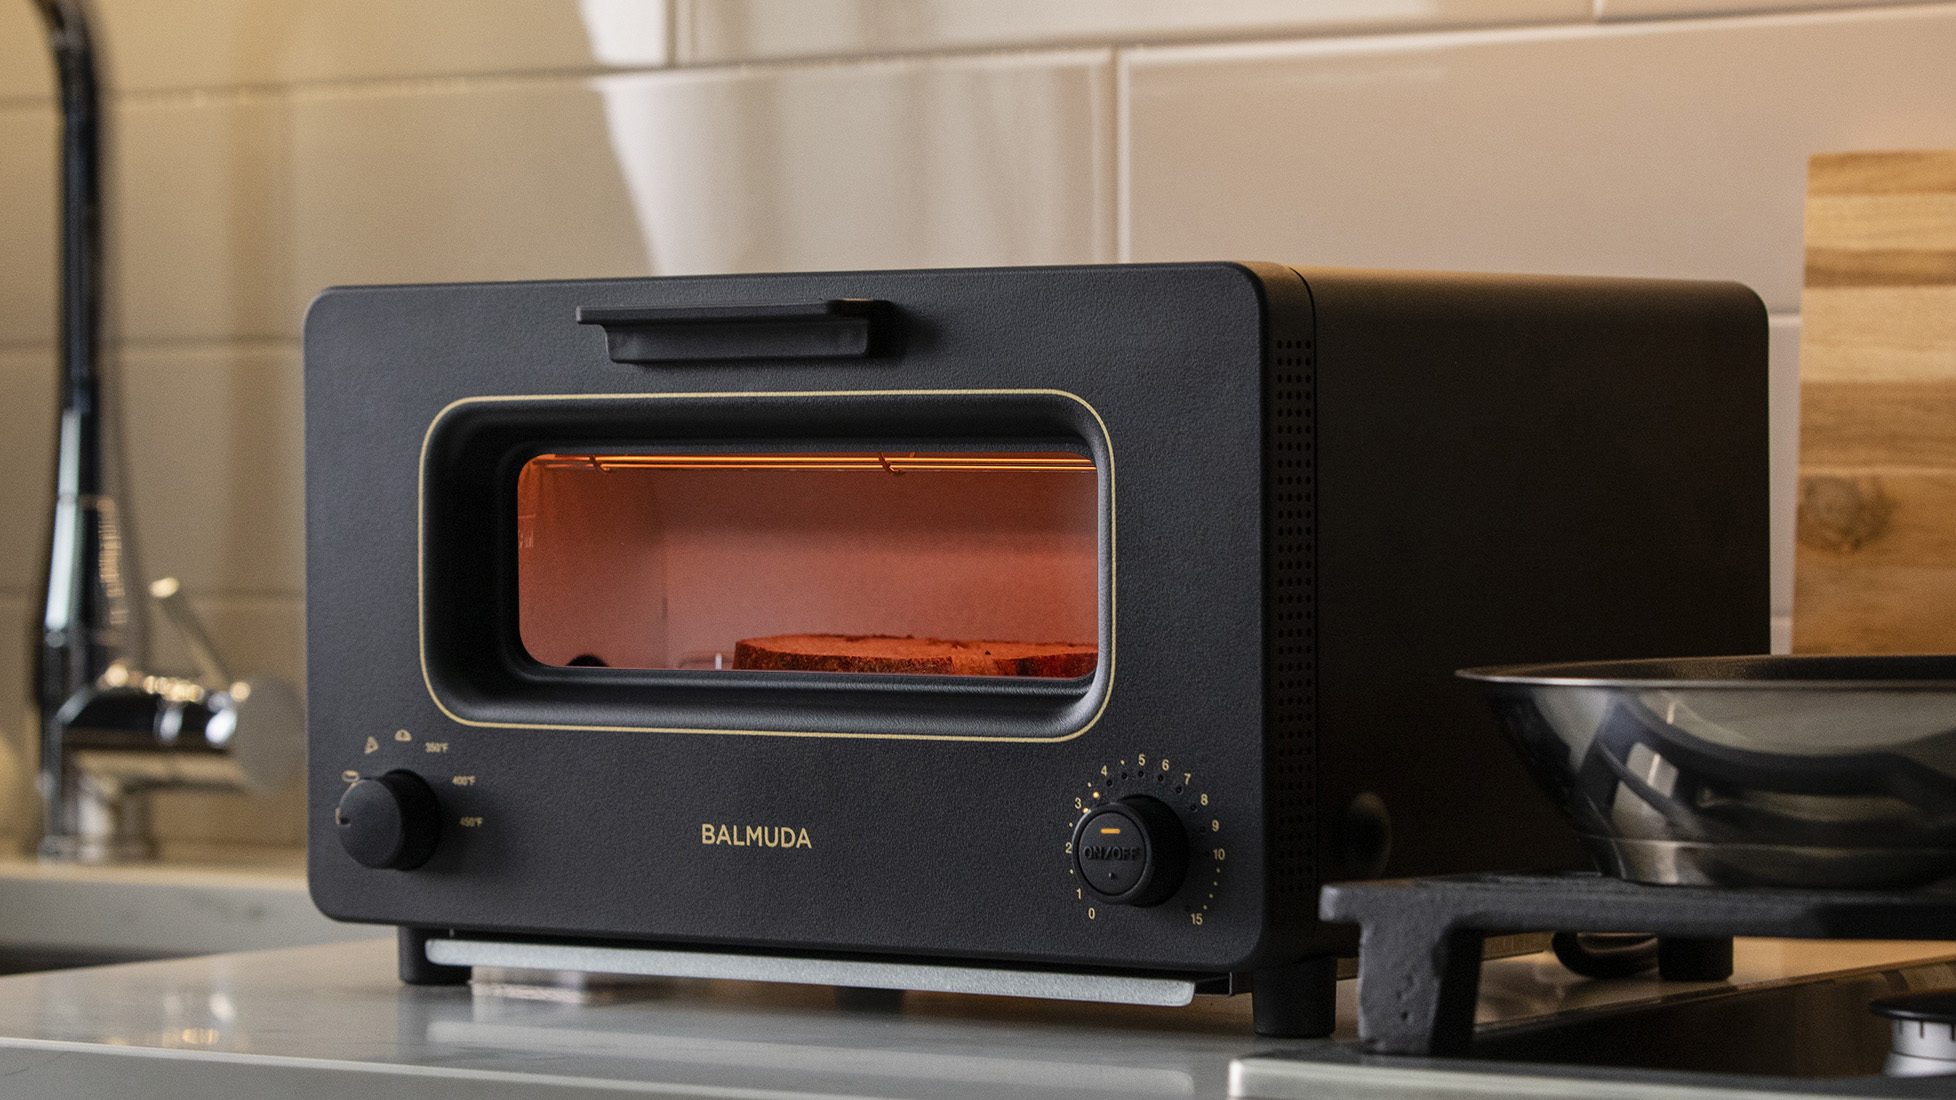 steam toaster from balmuda